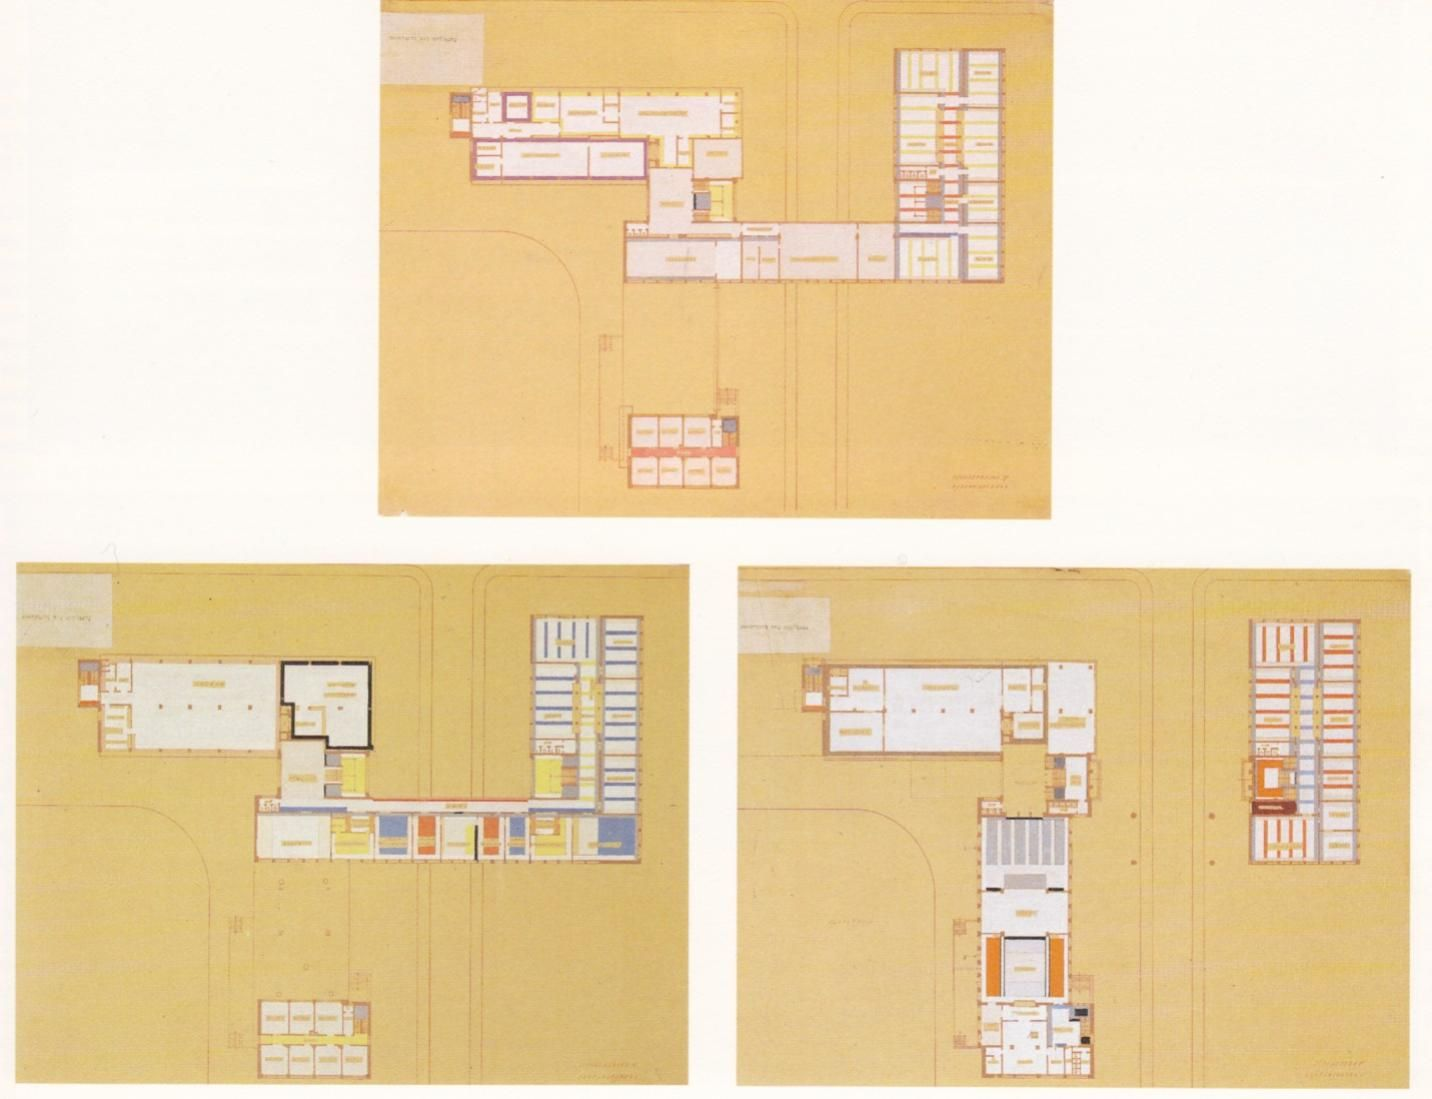 colour plan of the bauhaus author hinnerk scheper 1926 bauhaus archiv berlin estate. Black Bedroom Furniture Sets. Home Design Ideas